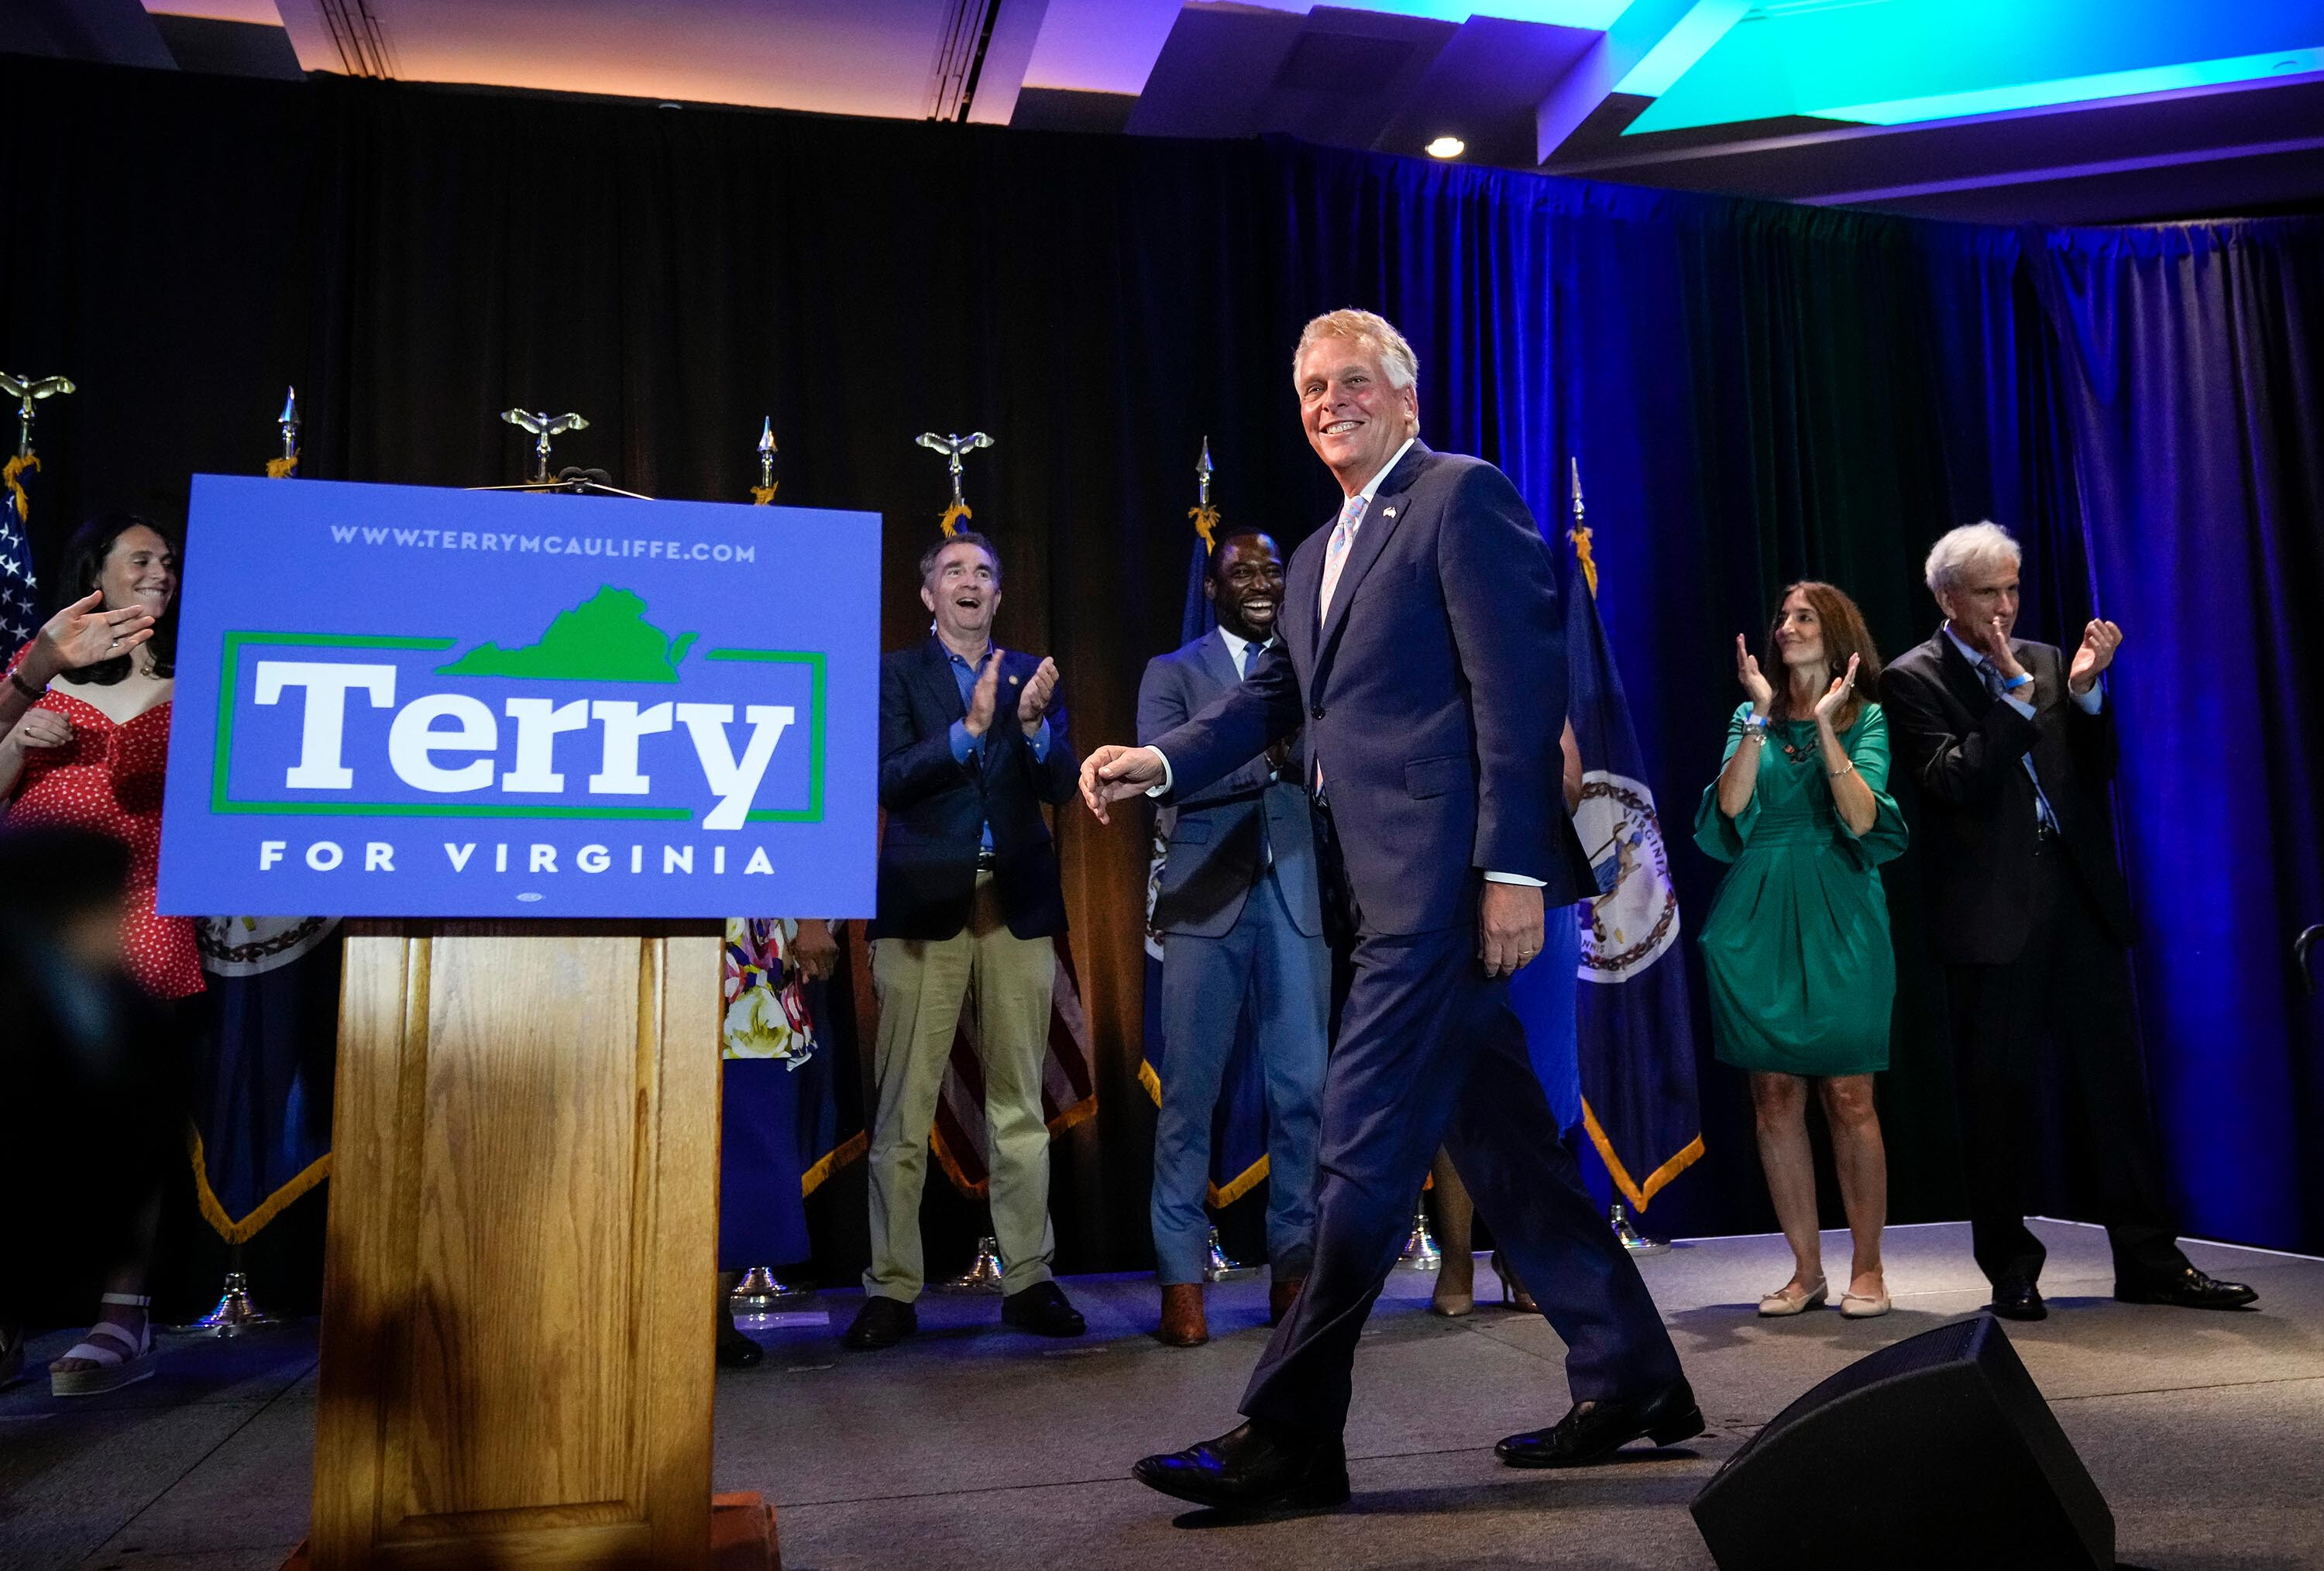 Biden jumps backs into campaigning with McAuliffe rally in Virginia